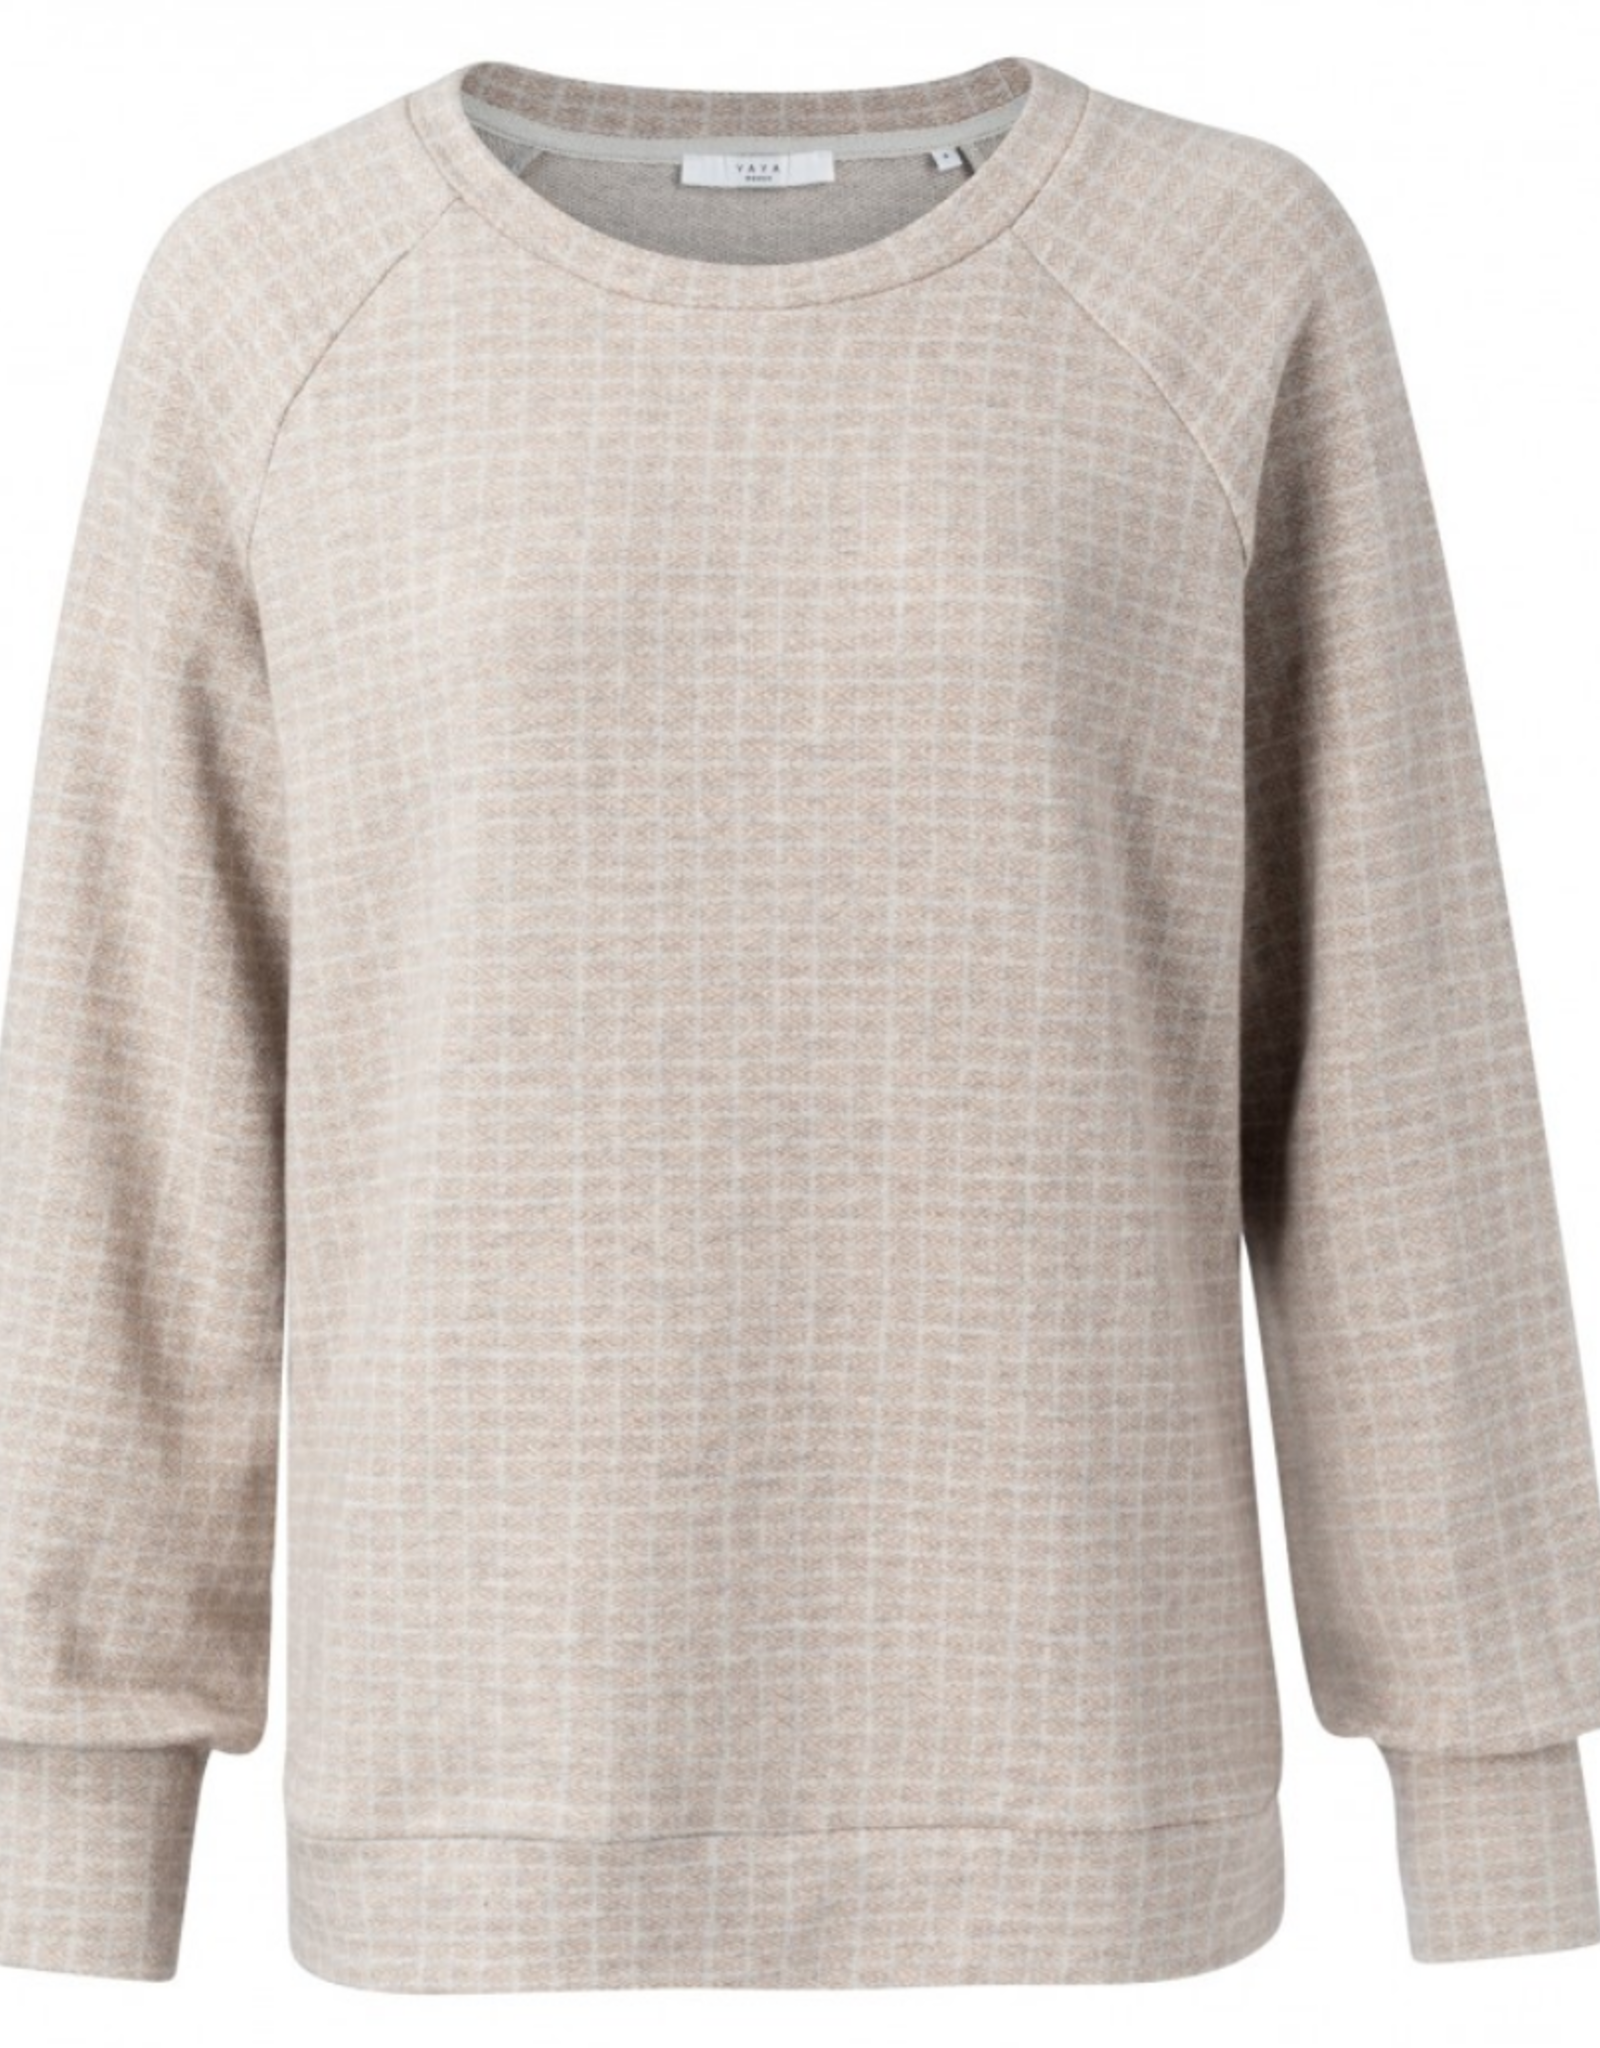 Yaya Beige Printed Sweater